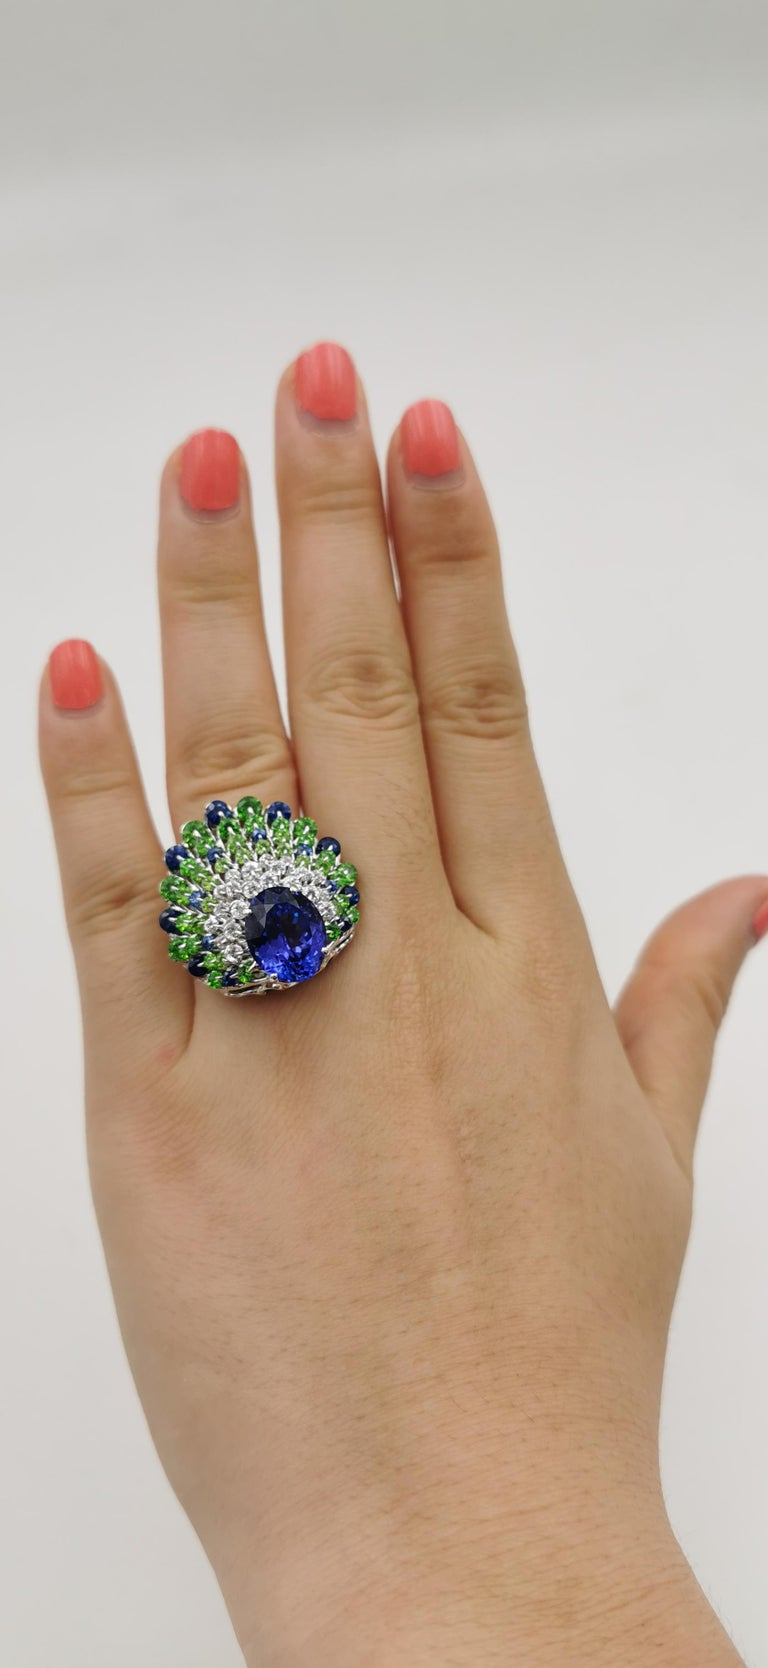 Moiseikin 18 Karat White Gold Tanzanite Demantoid Sapphire Peacock Cocktail Ring In New Condition For Sale In Hong Kong, HK